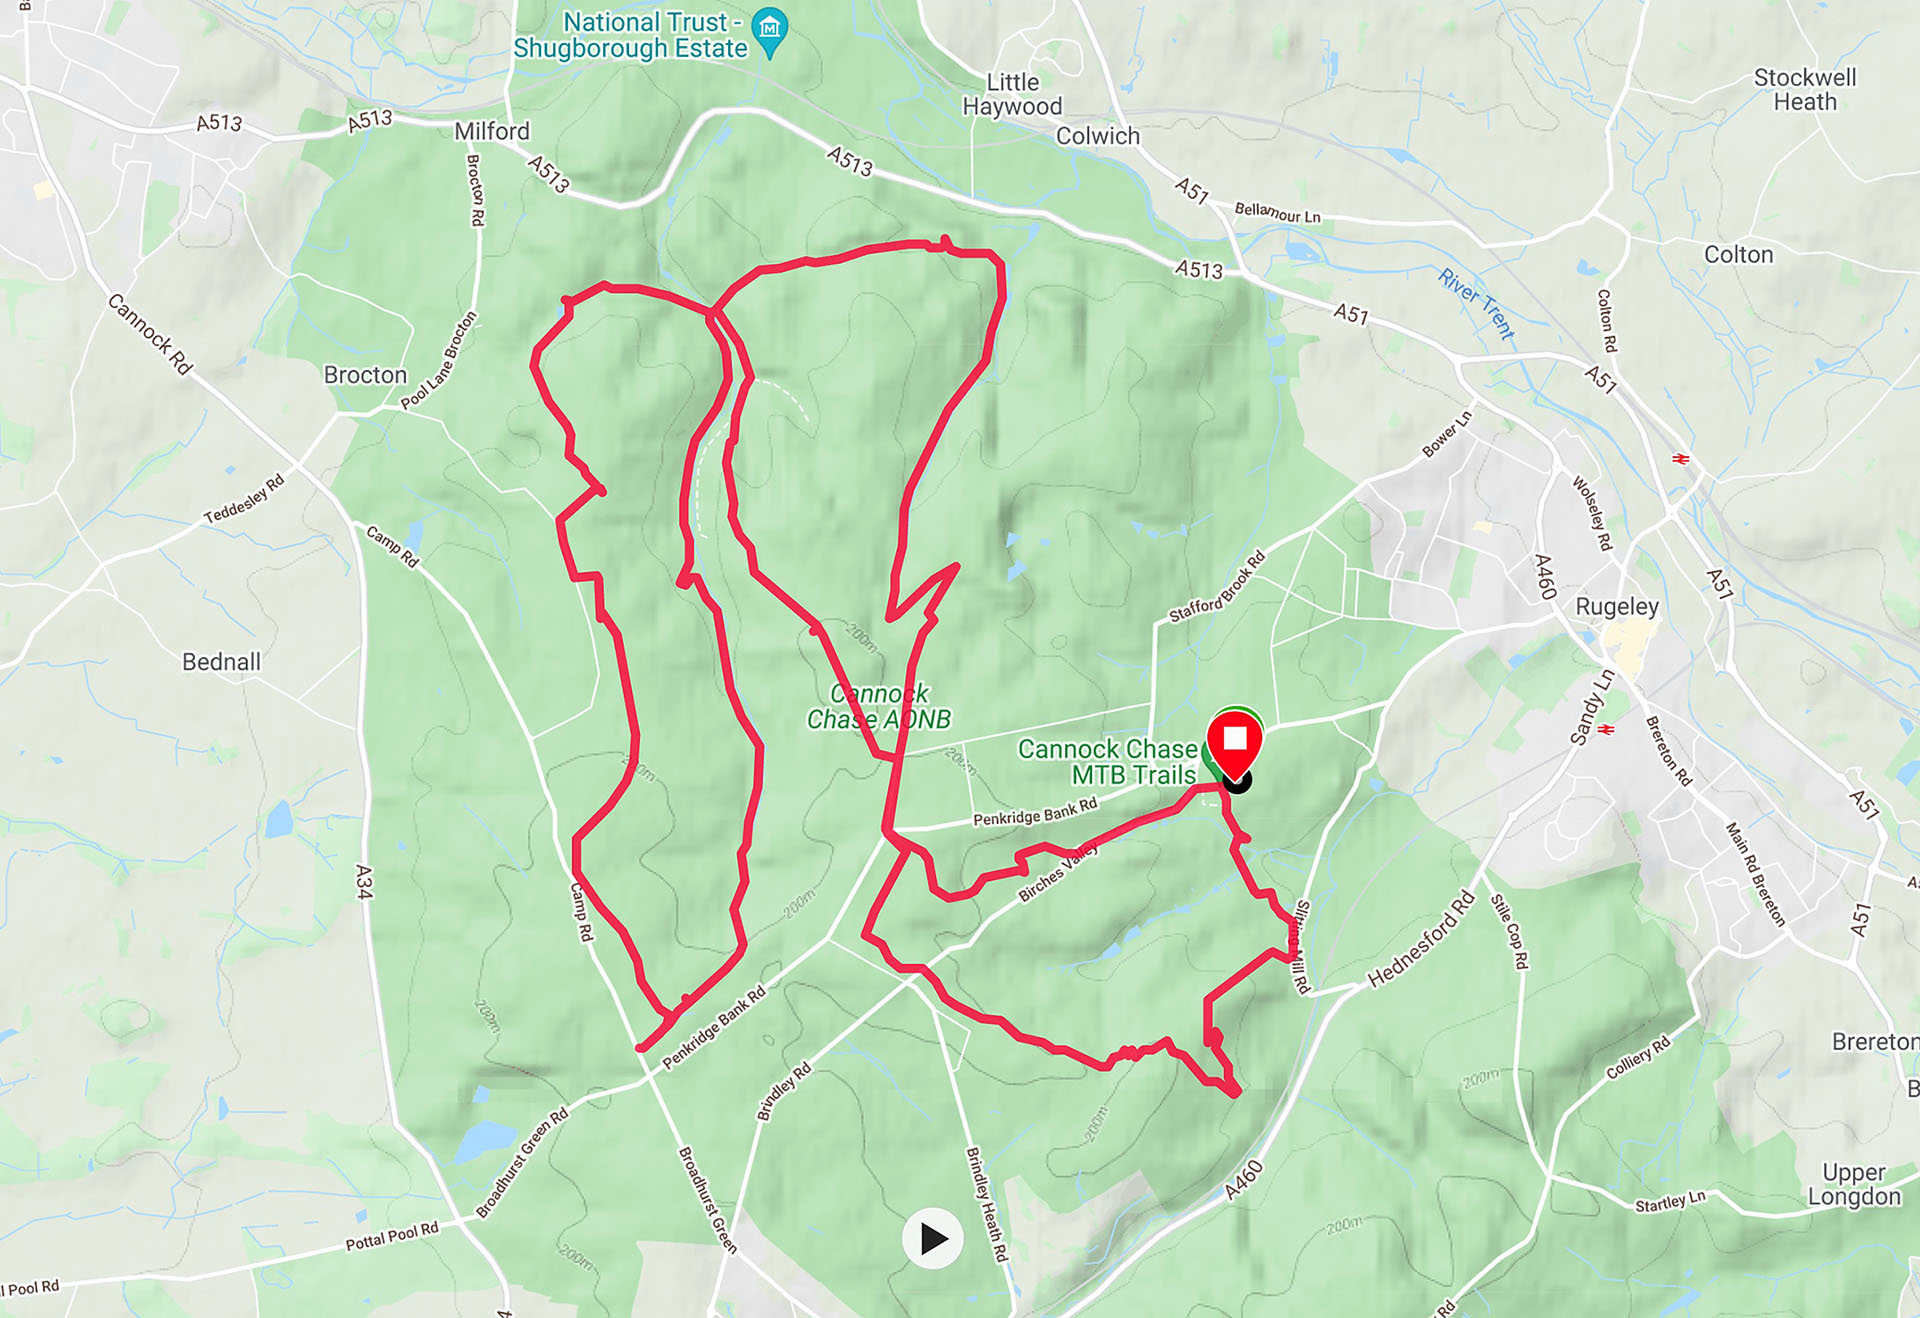 One of my rides around Cannock Chase featuring the trails (apart from the Monkey) and places described in this blog, downloaded from Garmin Connect